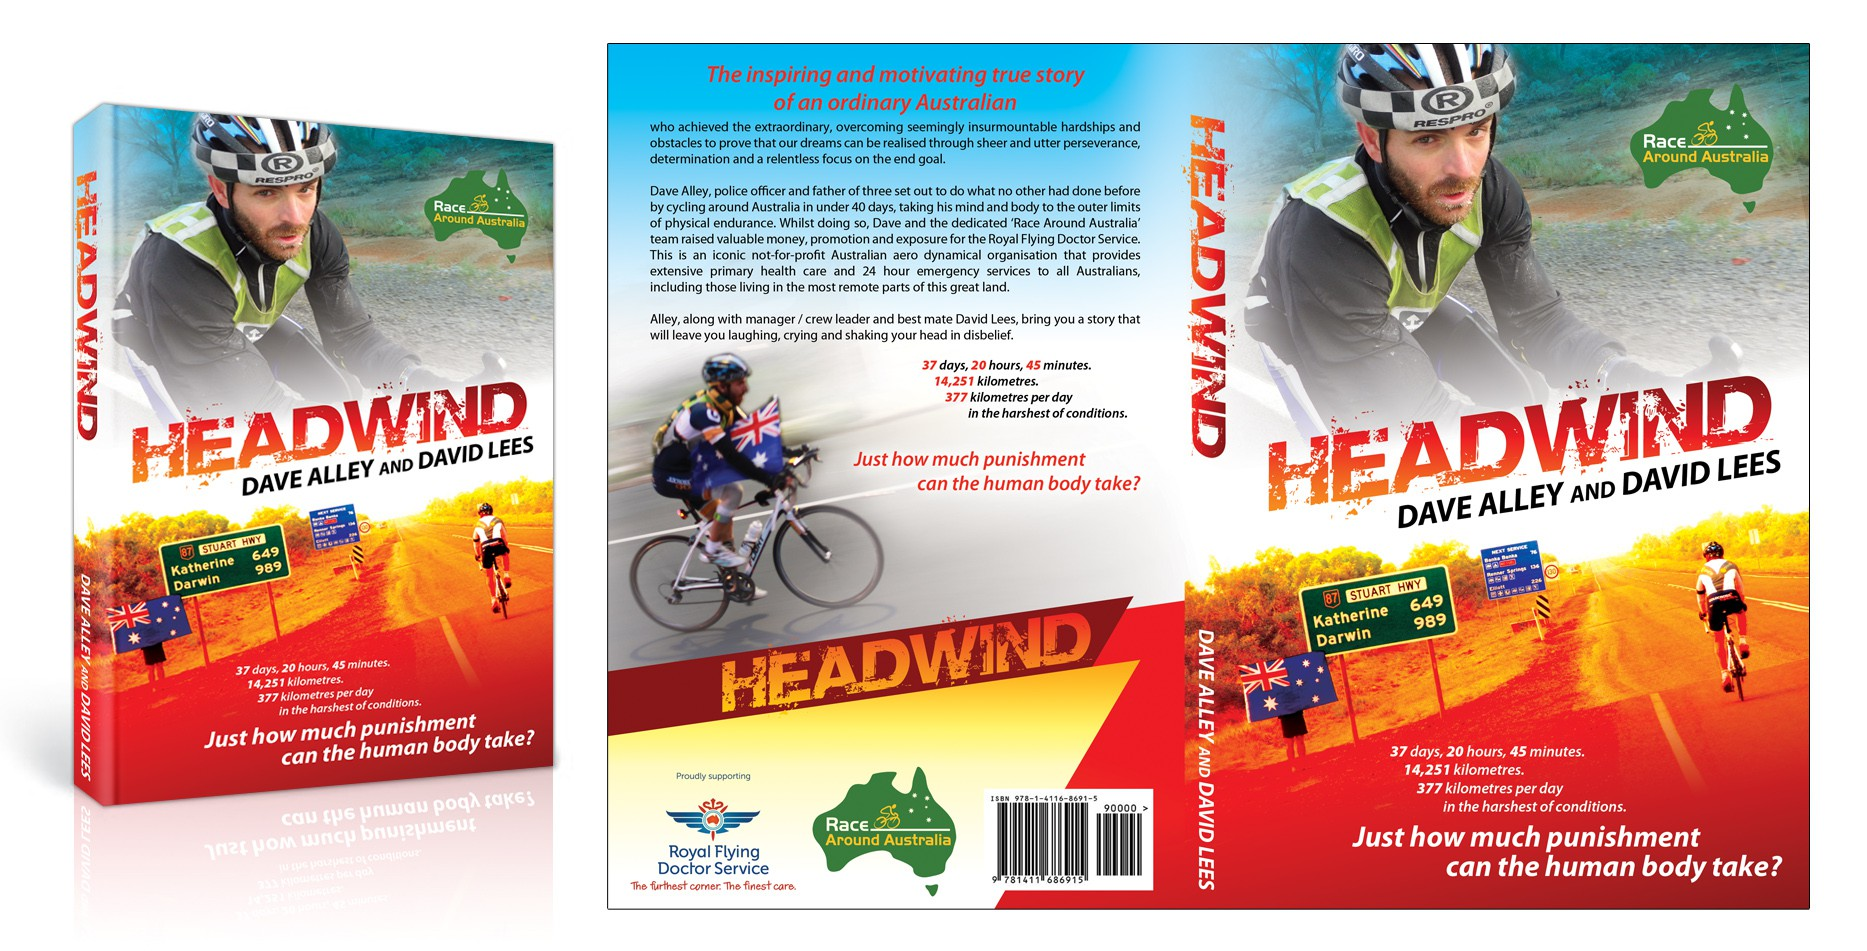 Help Race Around Australia with a new book or magazine cover